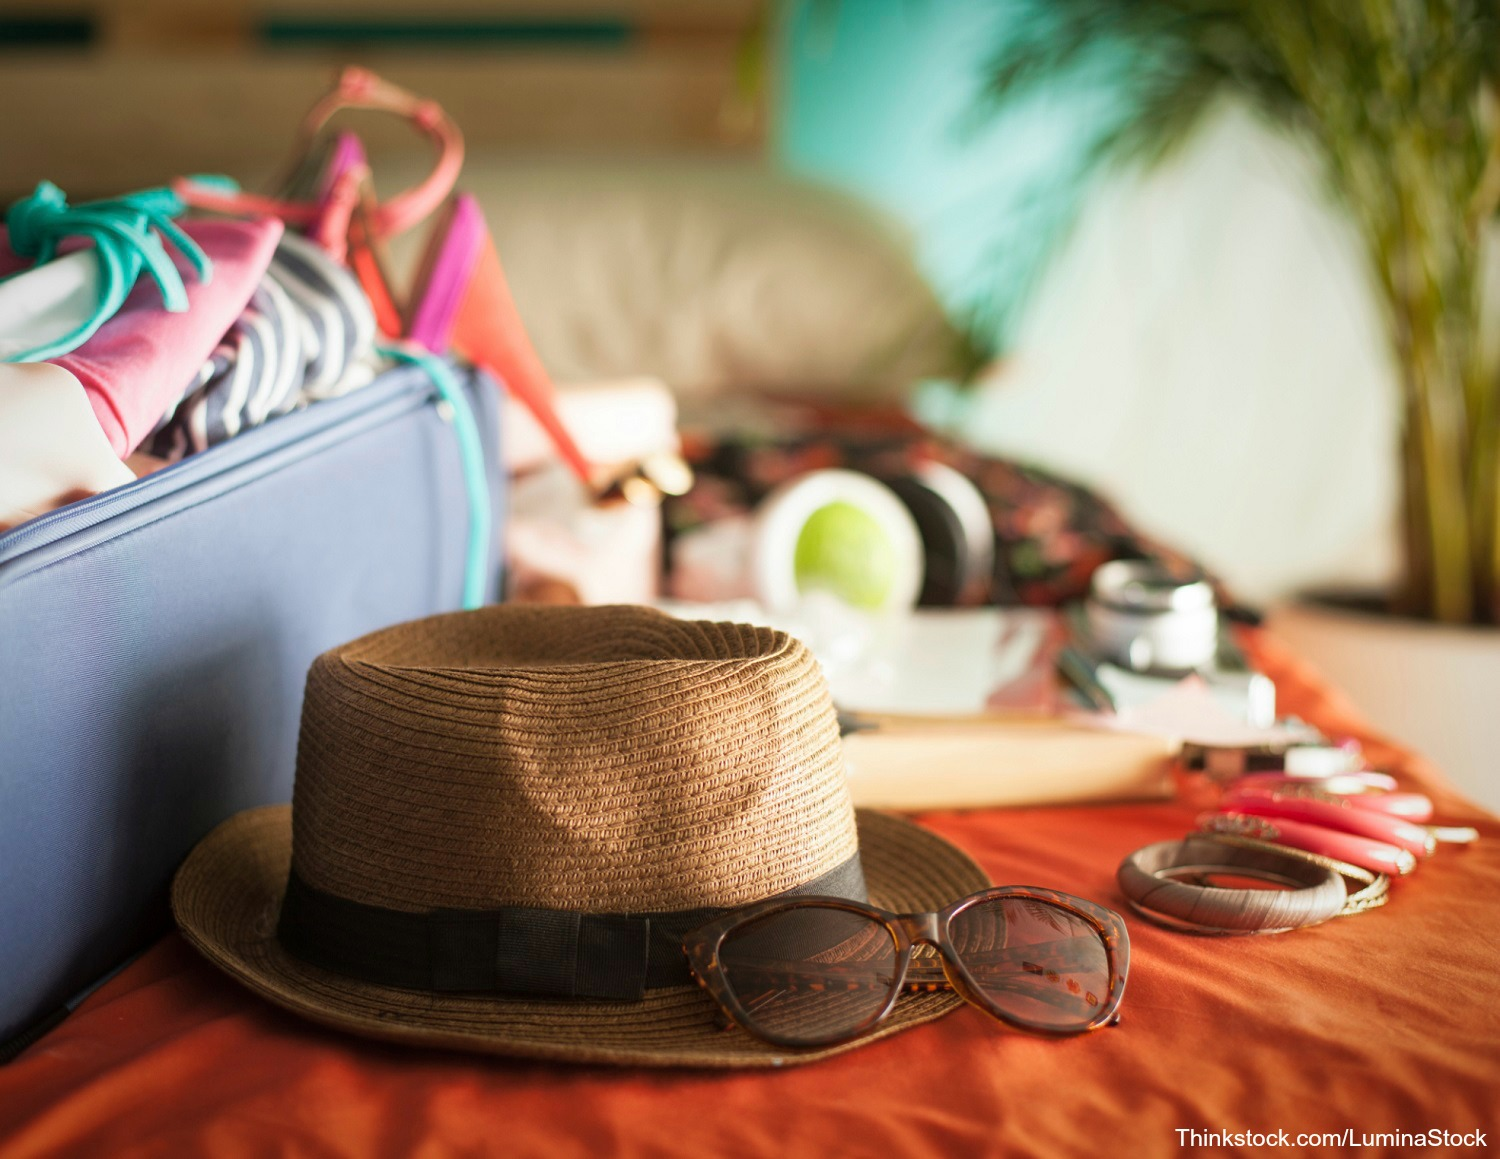 Your ULtimate Beach Packing List for Family Vacation